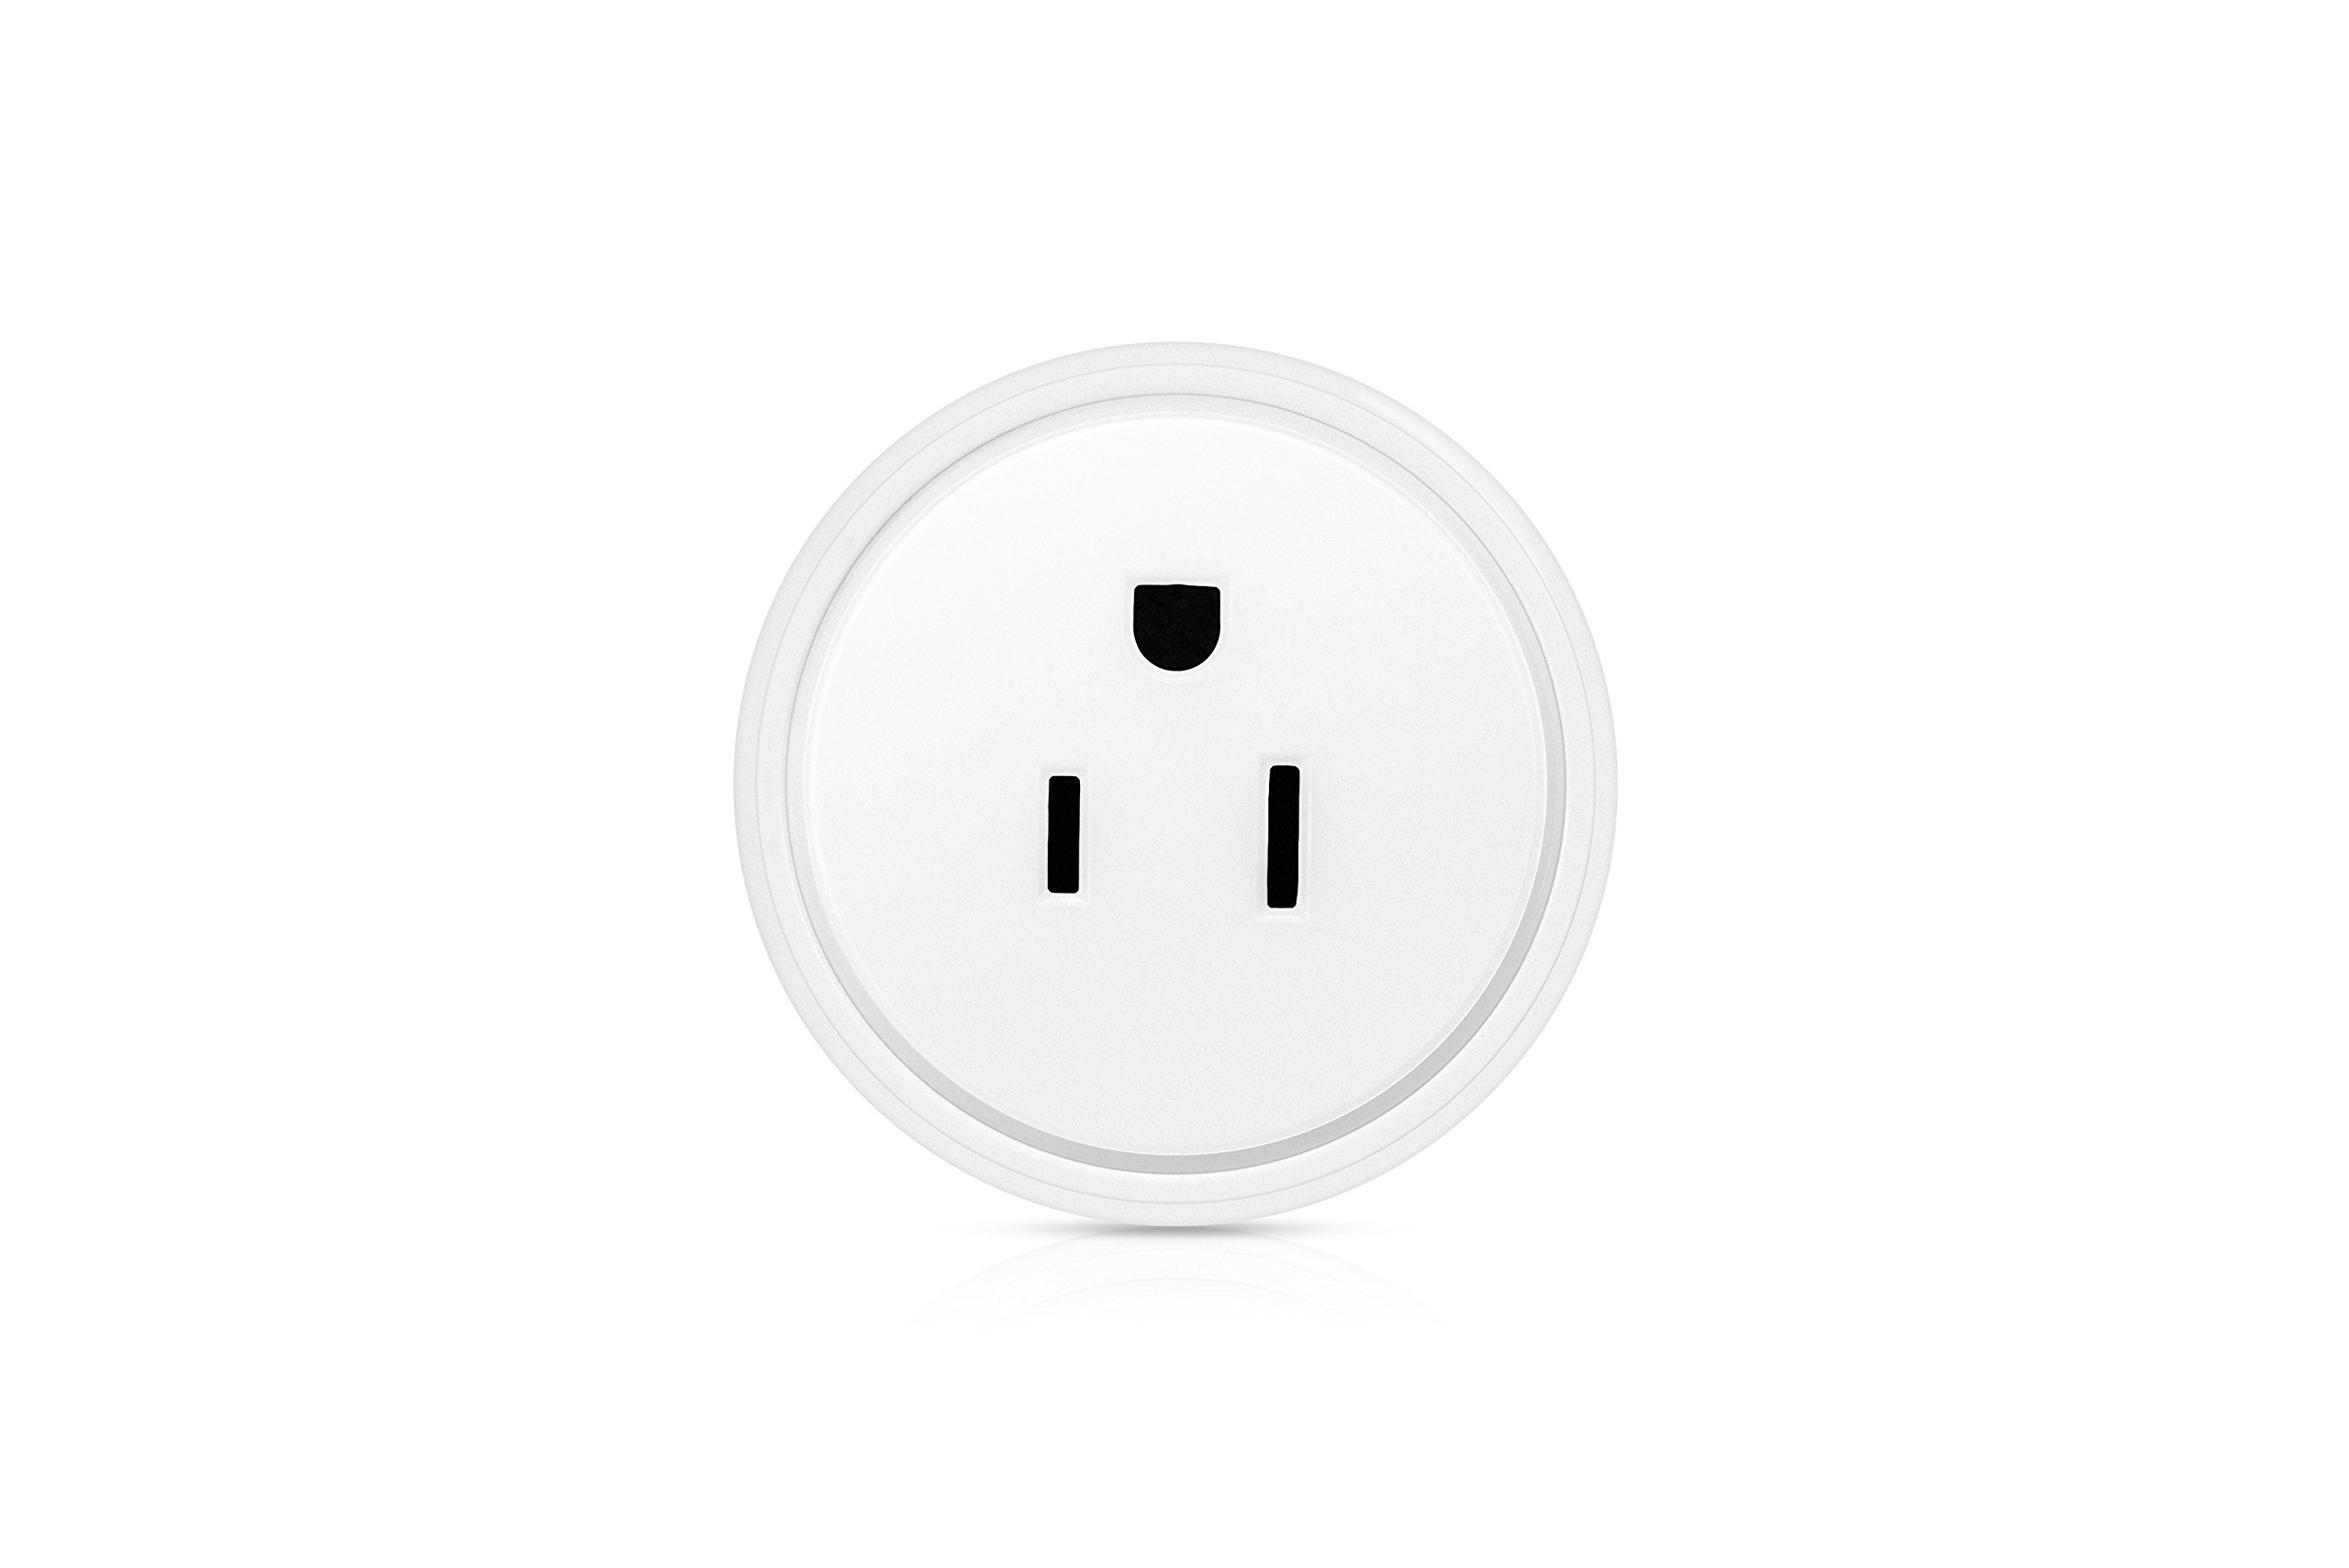 BearDot Mini Smart Plug, wifi smart home devices, no hub required, Compatible with Alexa and Google Home, App and voice control anywhere and anytime, white fashion design as a special gift